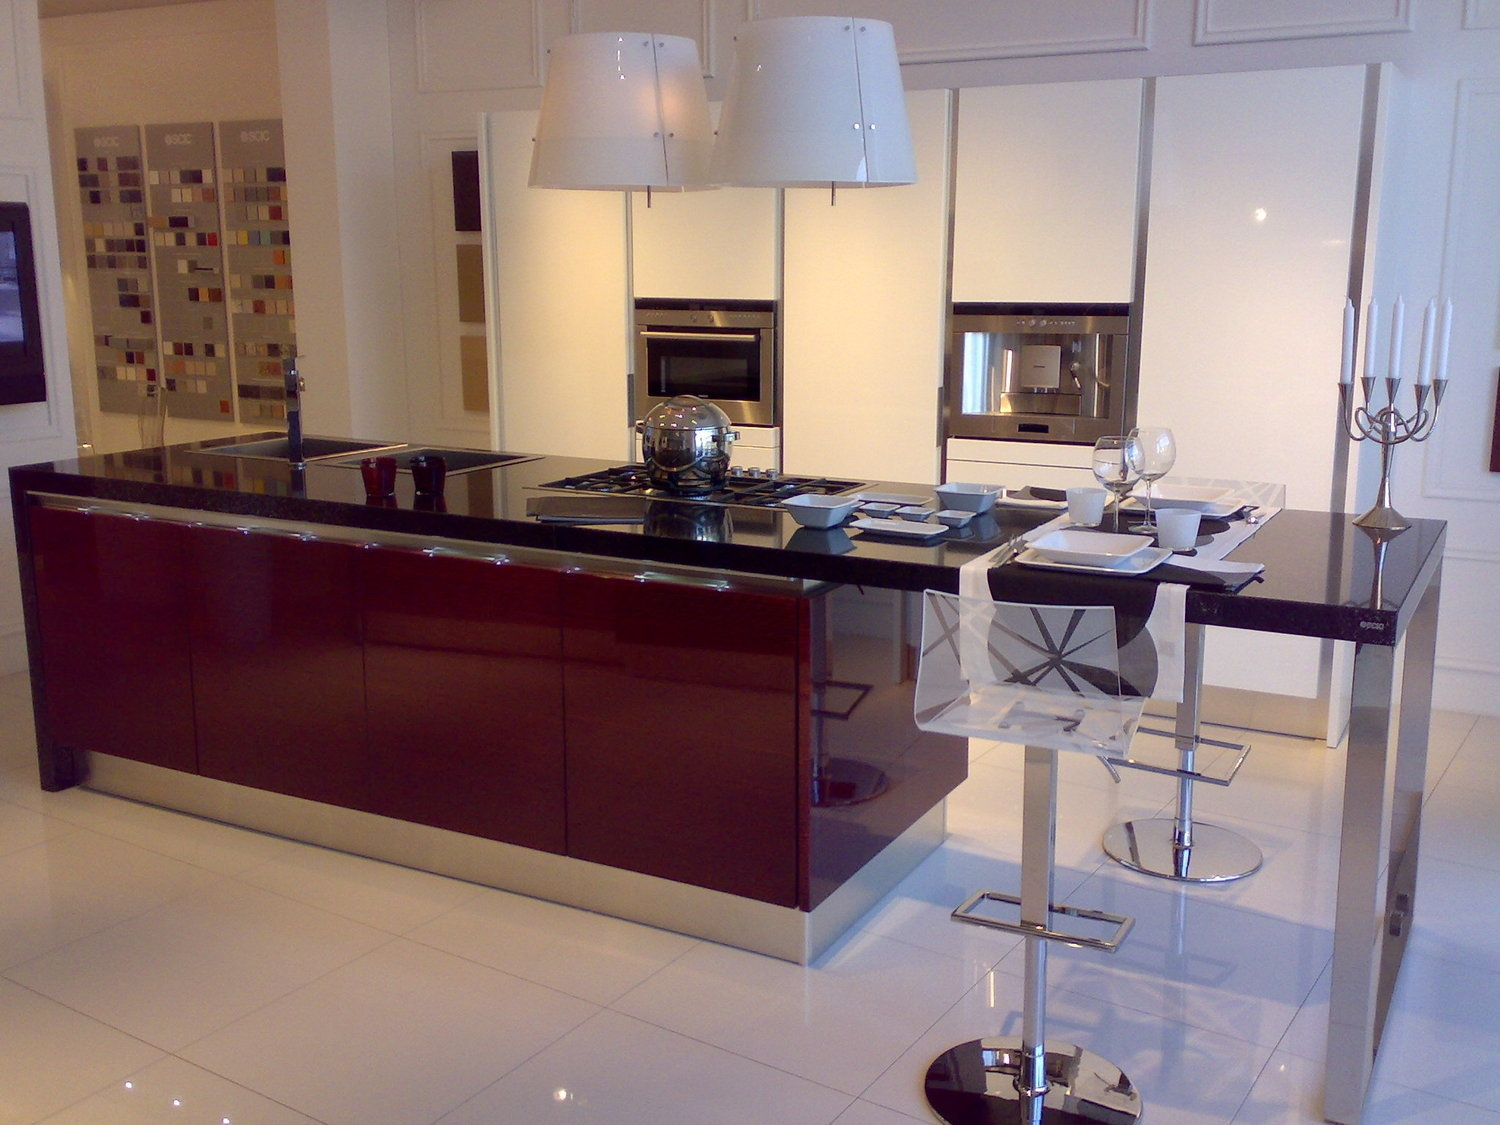 Awesome Scic Cucine Outlet Photos - Ideas & Design 2017 ...